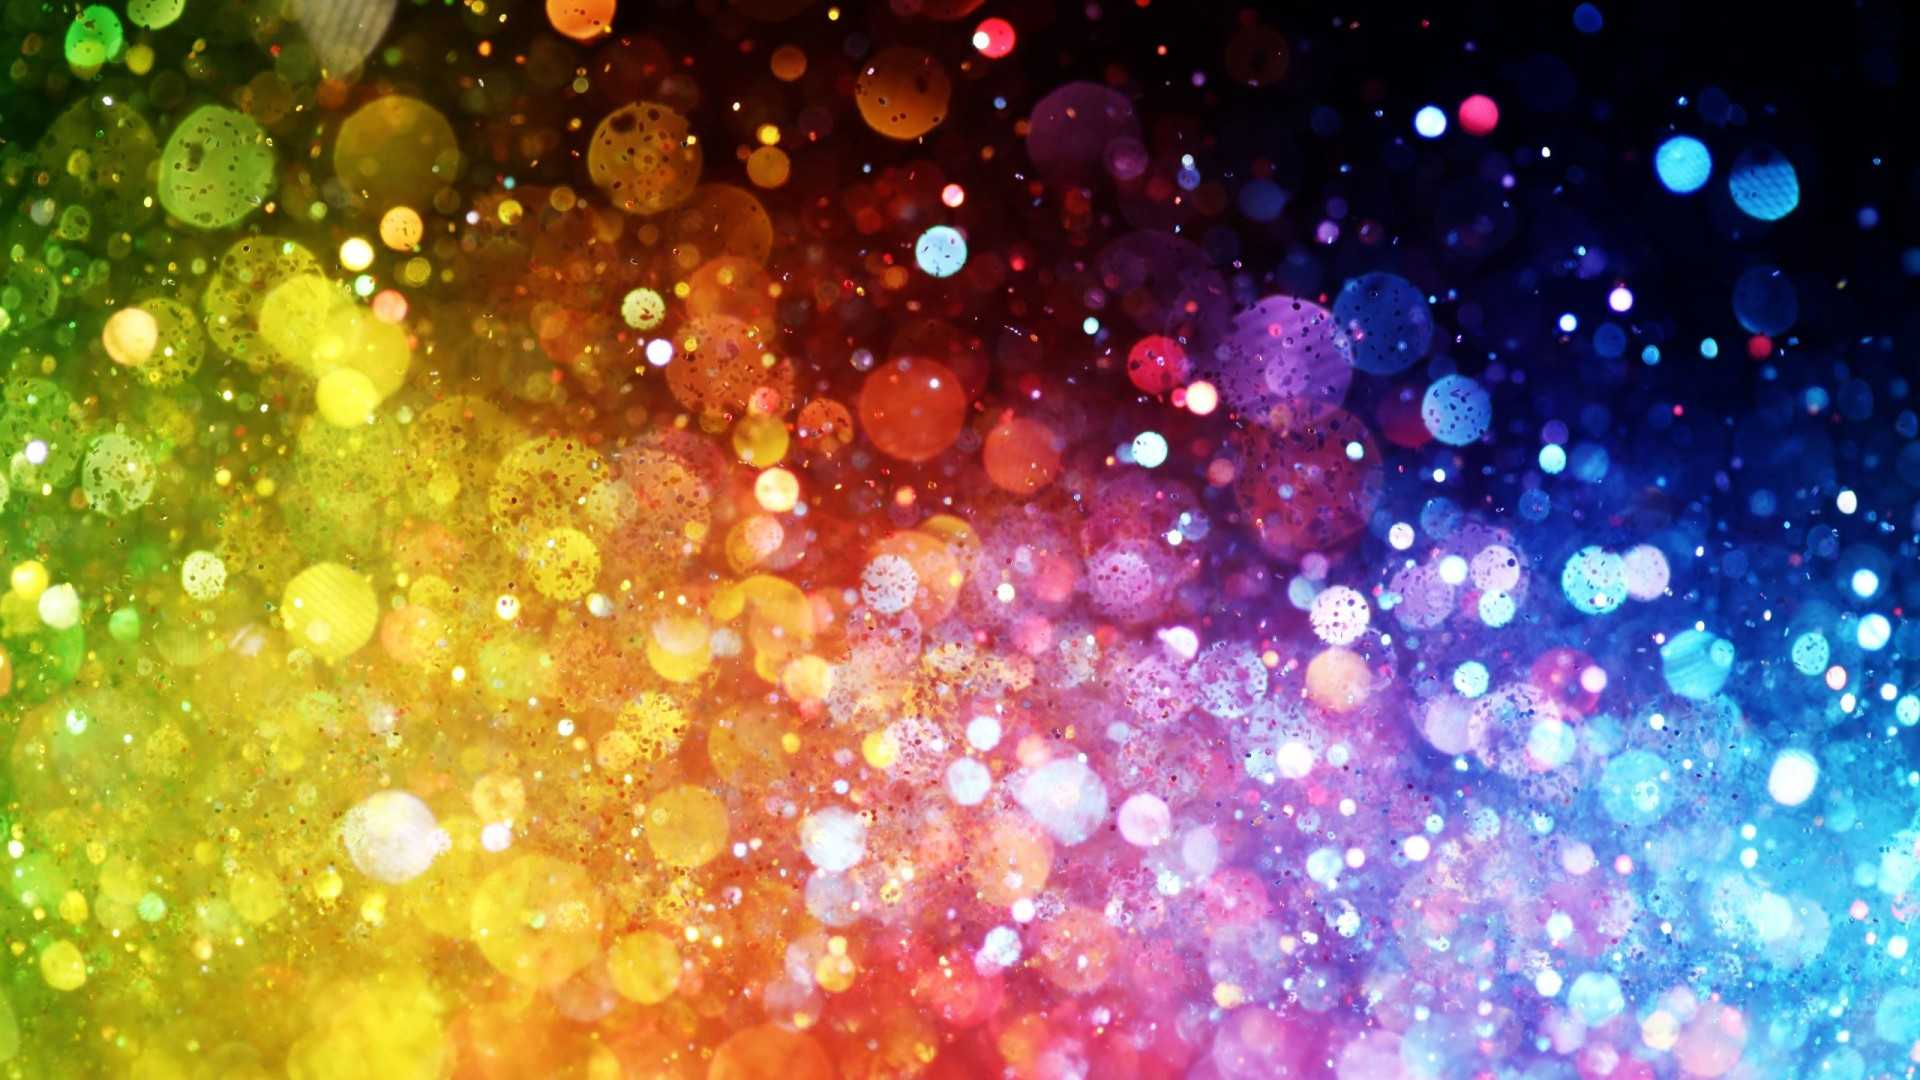 Colorful Backgrounds and Colorful Wallpapers Best Collection 1920x1080